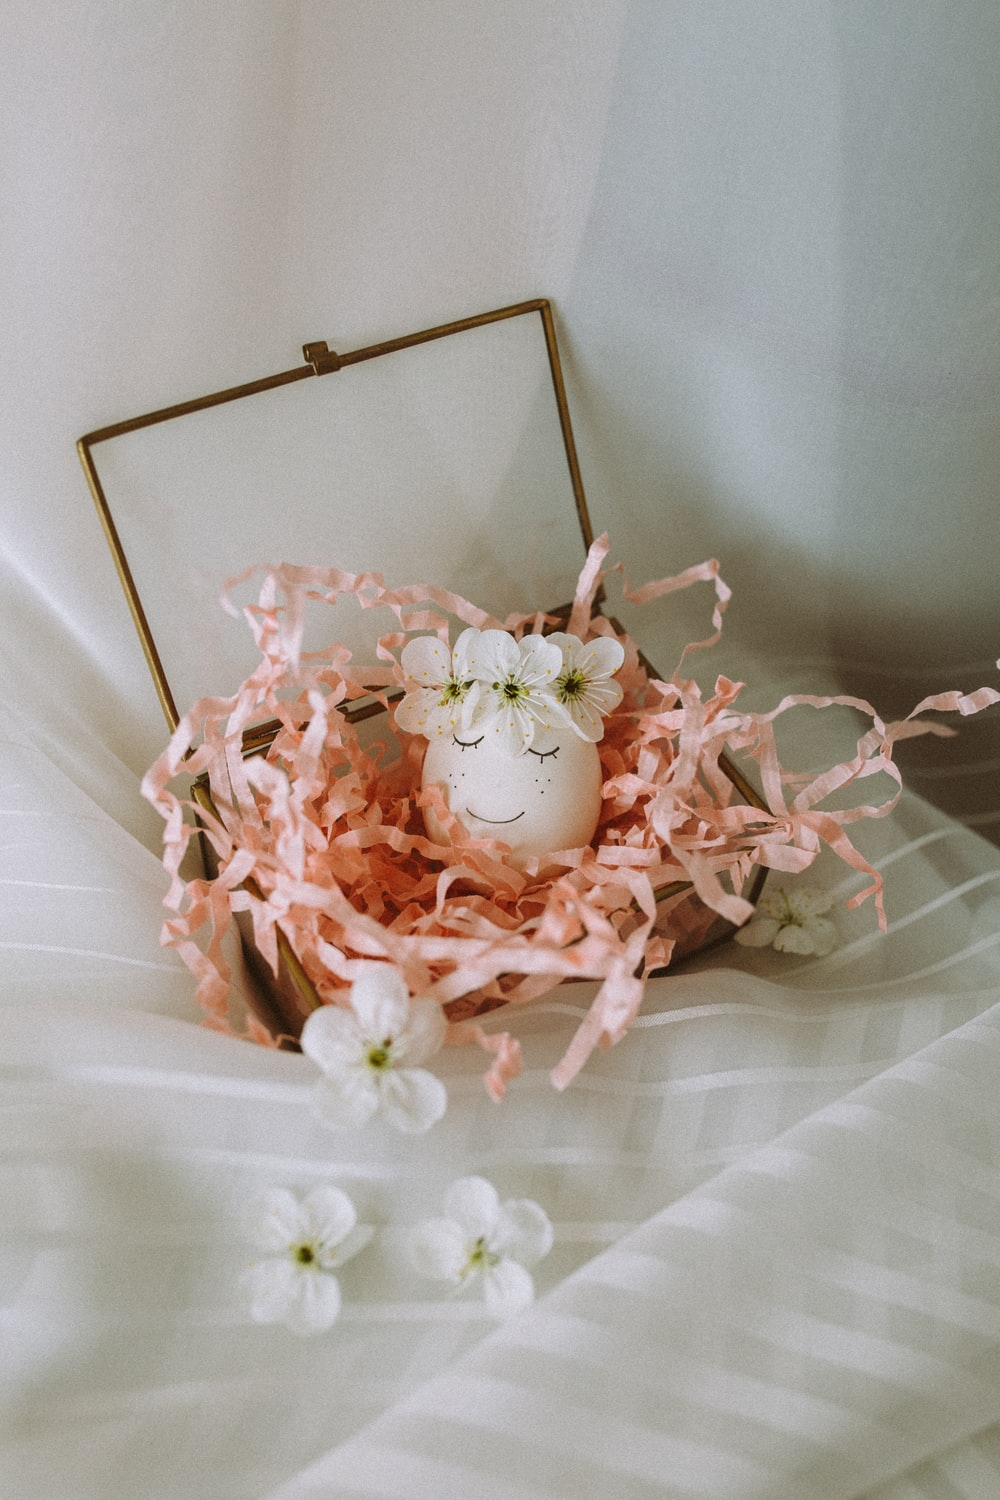 pink rose bouquet on white textile